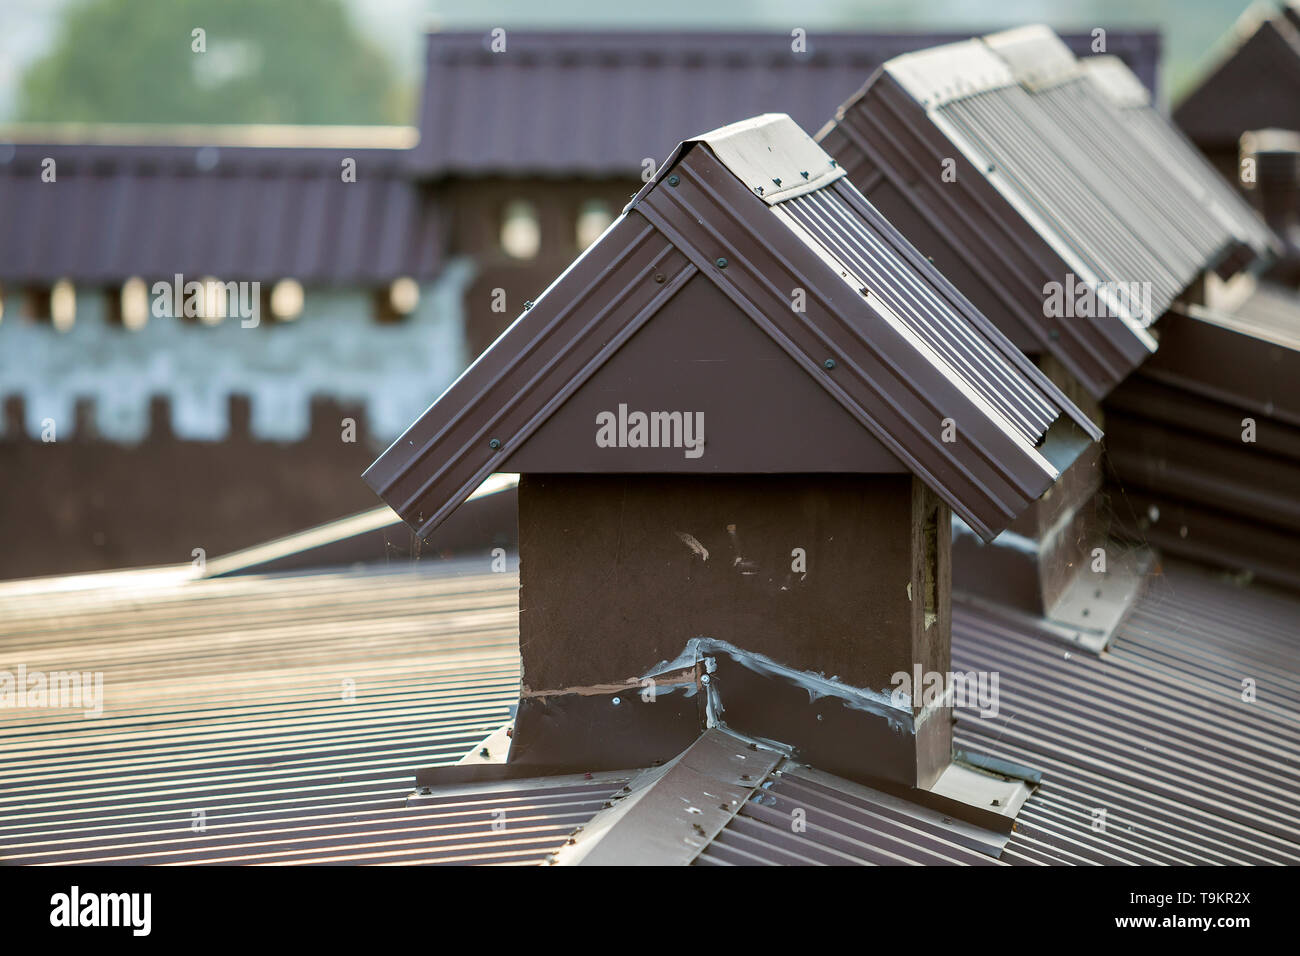 Close-up detail of new built brick plastered chimneys on house top with metal tile roof. Roofing, repair and renovation work. - Stock Image